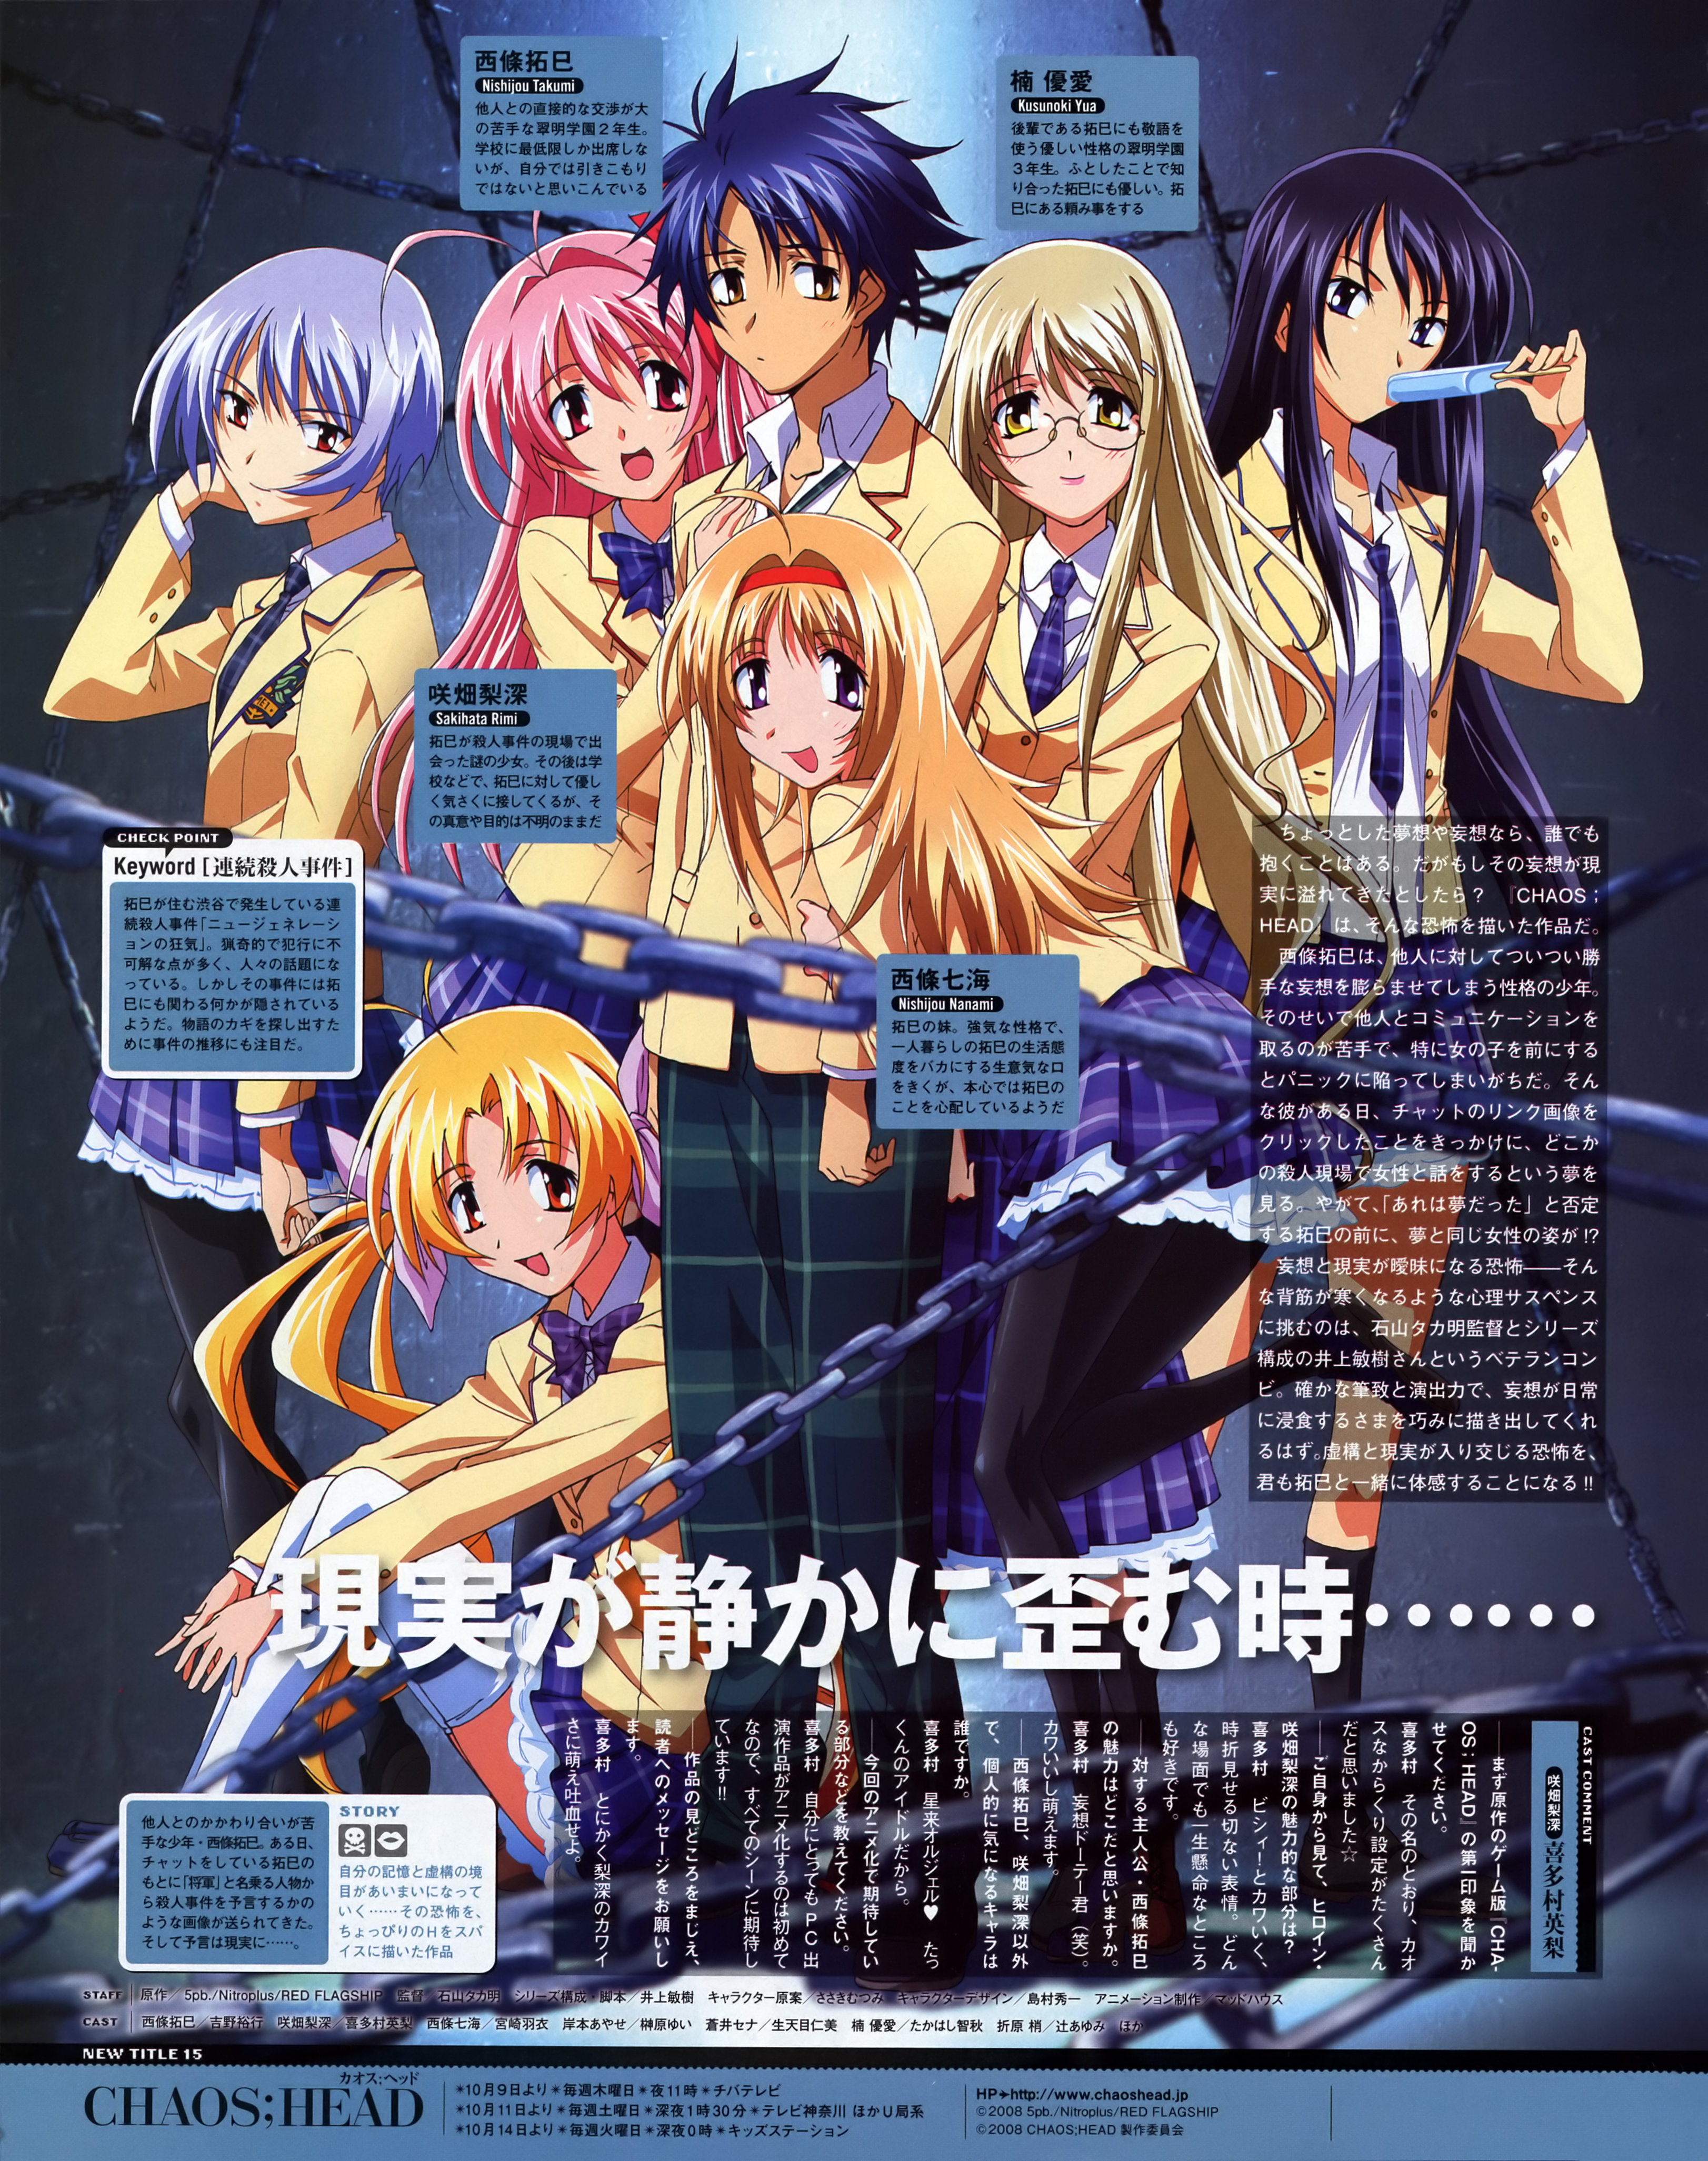 Chaos, Head, anime, picture, scan, -, картинка, pictures, картинки, аниме, Хаос, Вершина, скан